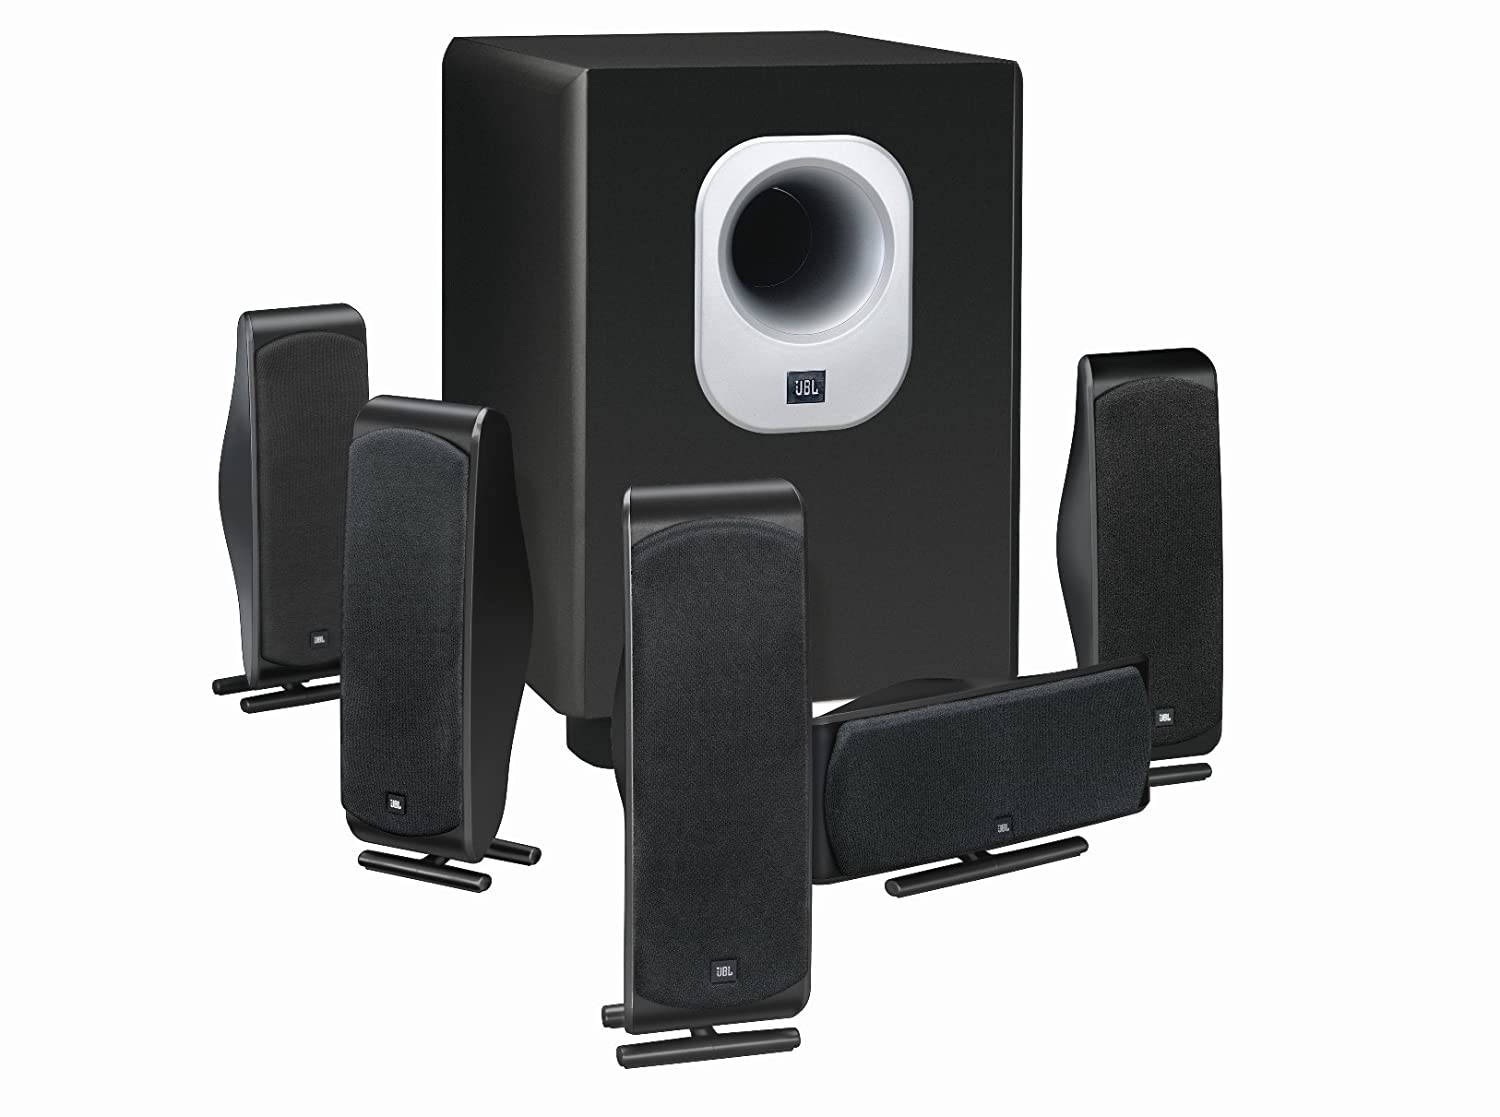 b4f3e5bae70b2 Amazon.com  JBL 5.1-Channel Surround Cinema Speaker System with 10-Inch  Subwoofer SCS500.5 (Discontinued by Manufacturer)  Home Audio   Theater